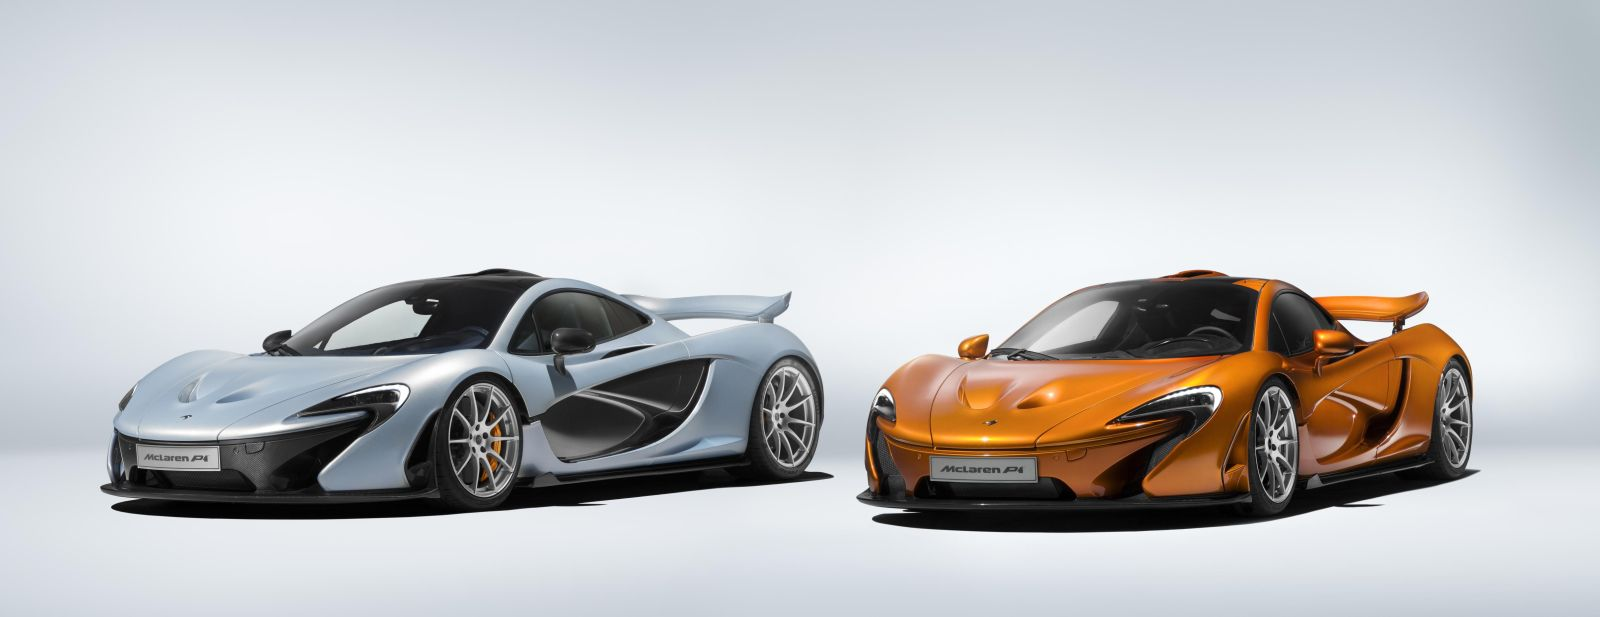 McLaren P1 first and last units